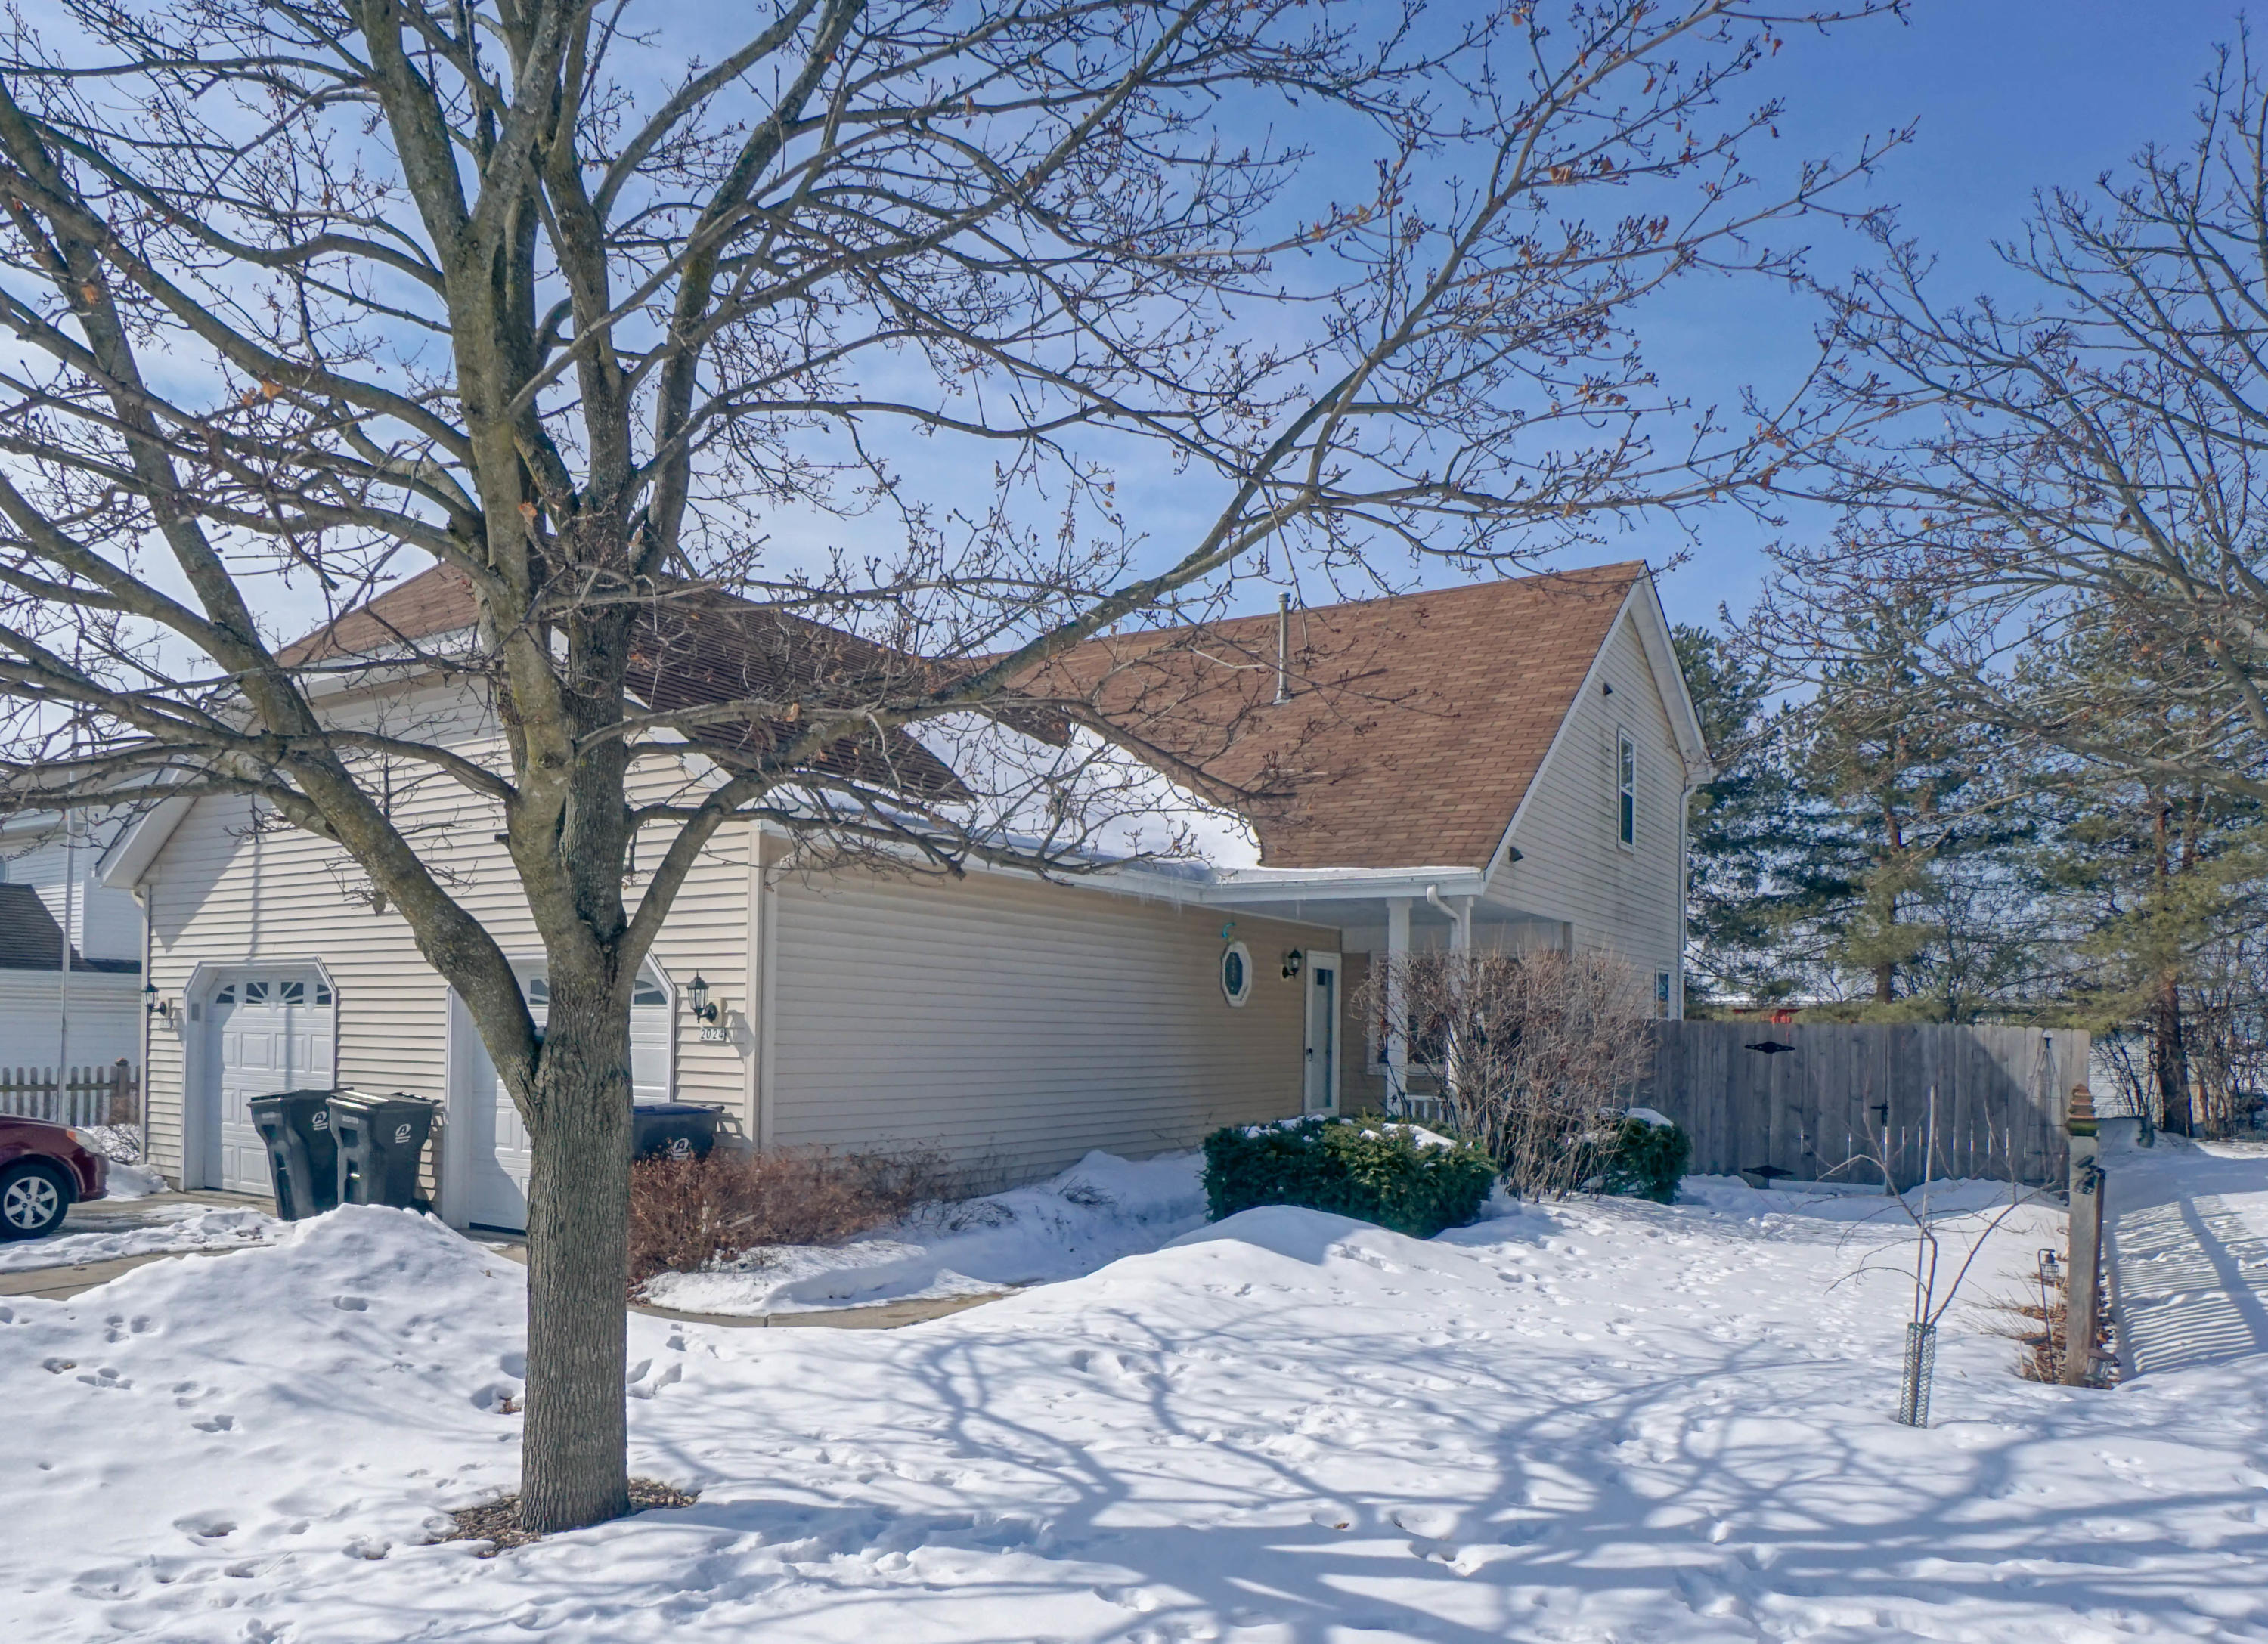 2024 Madera St, Waukesha, Wisconsin 53189, 2 Bedrooms Bedrooms, 5 Rooms Rooms,1 BathroomBathrooms,Two-Family,For Sale,Madera St,1,1626281